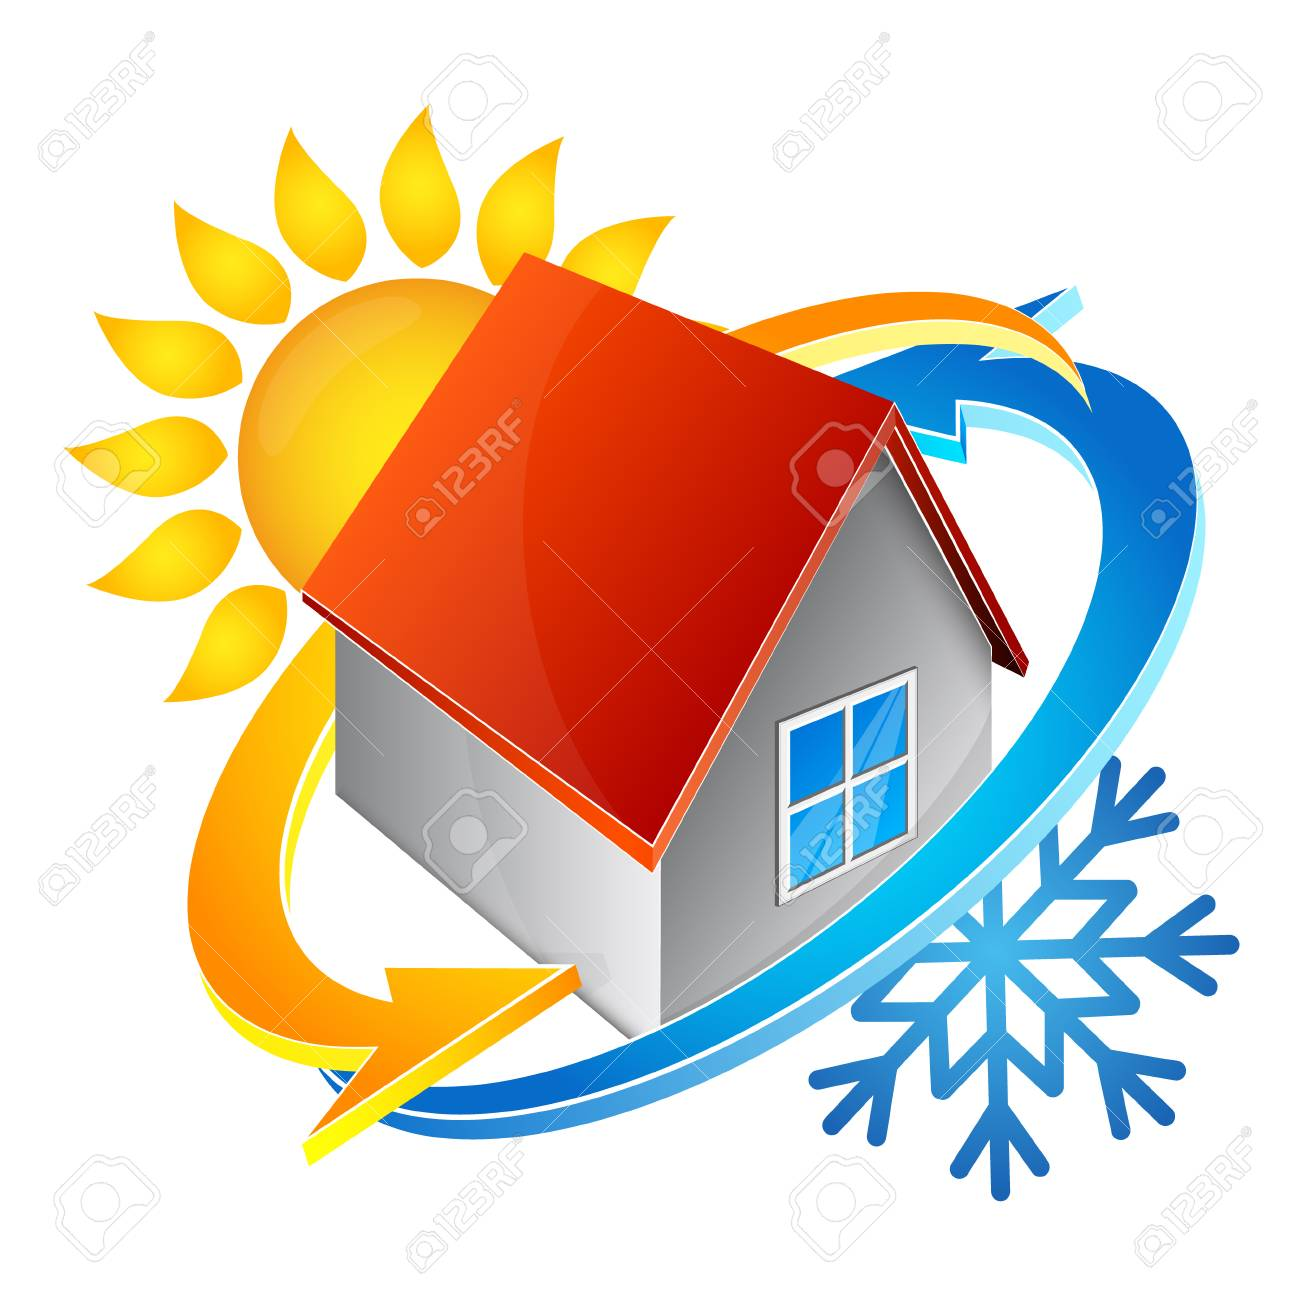 Temperature in the house symbol of air conditioning - 87774653